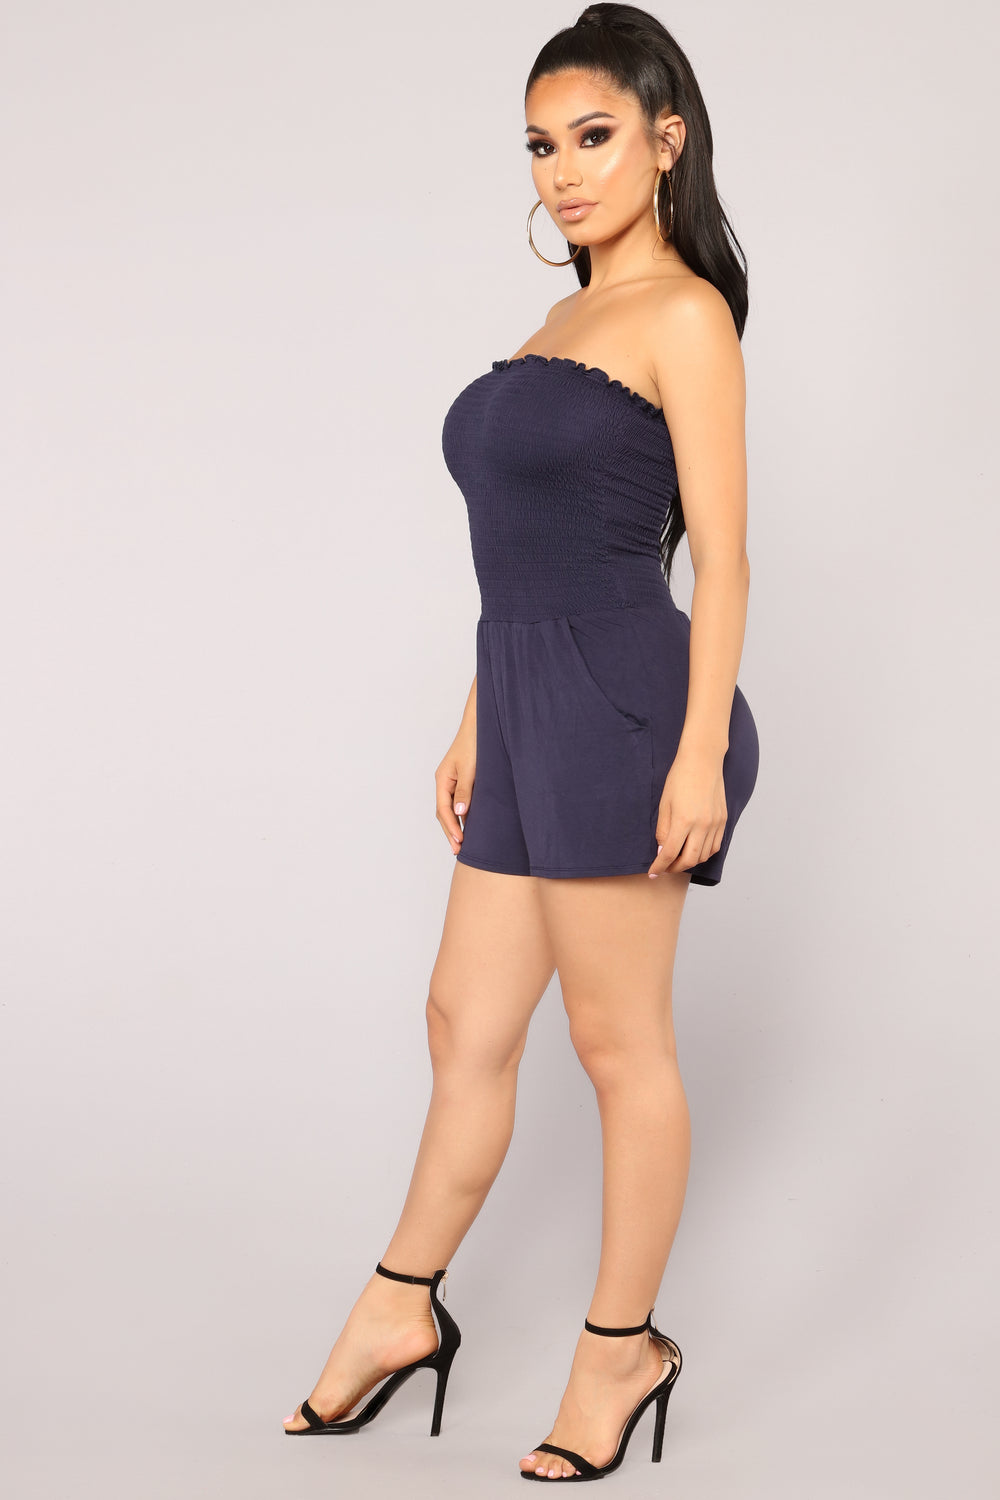 Atlast Smocked Romper - Navy